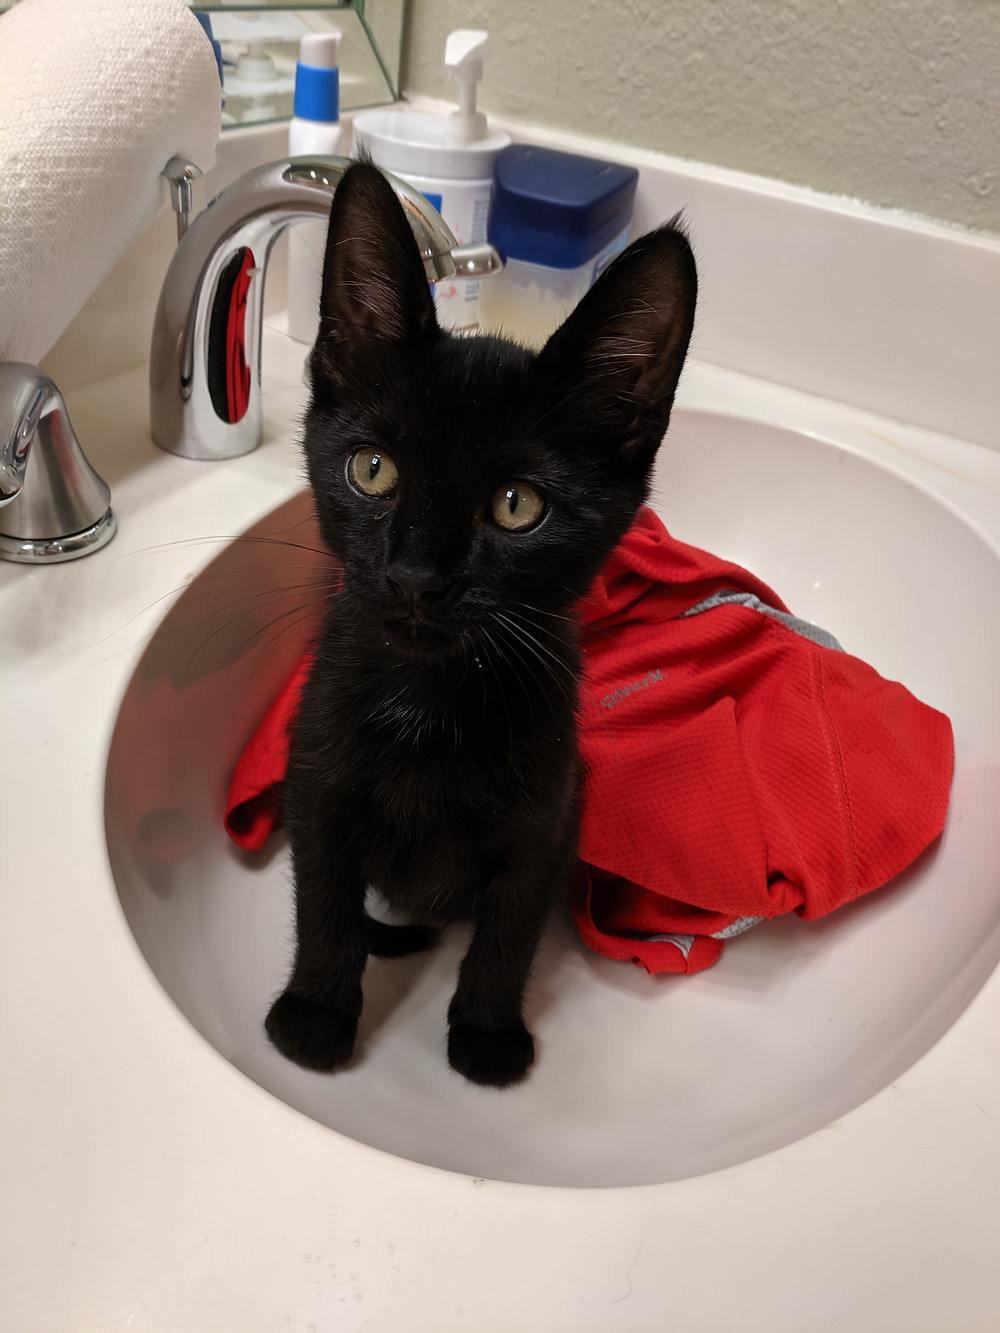 Magni in the sink.